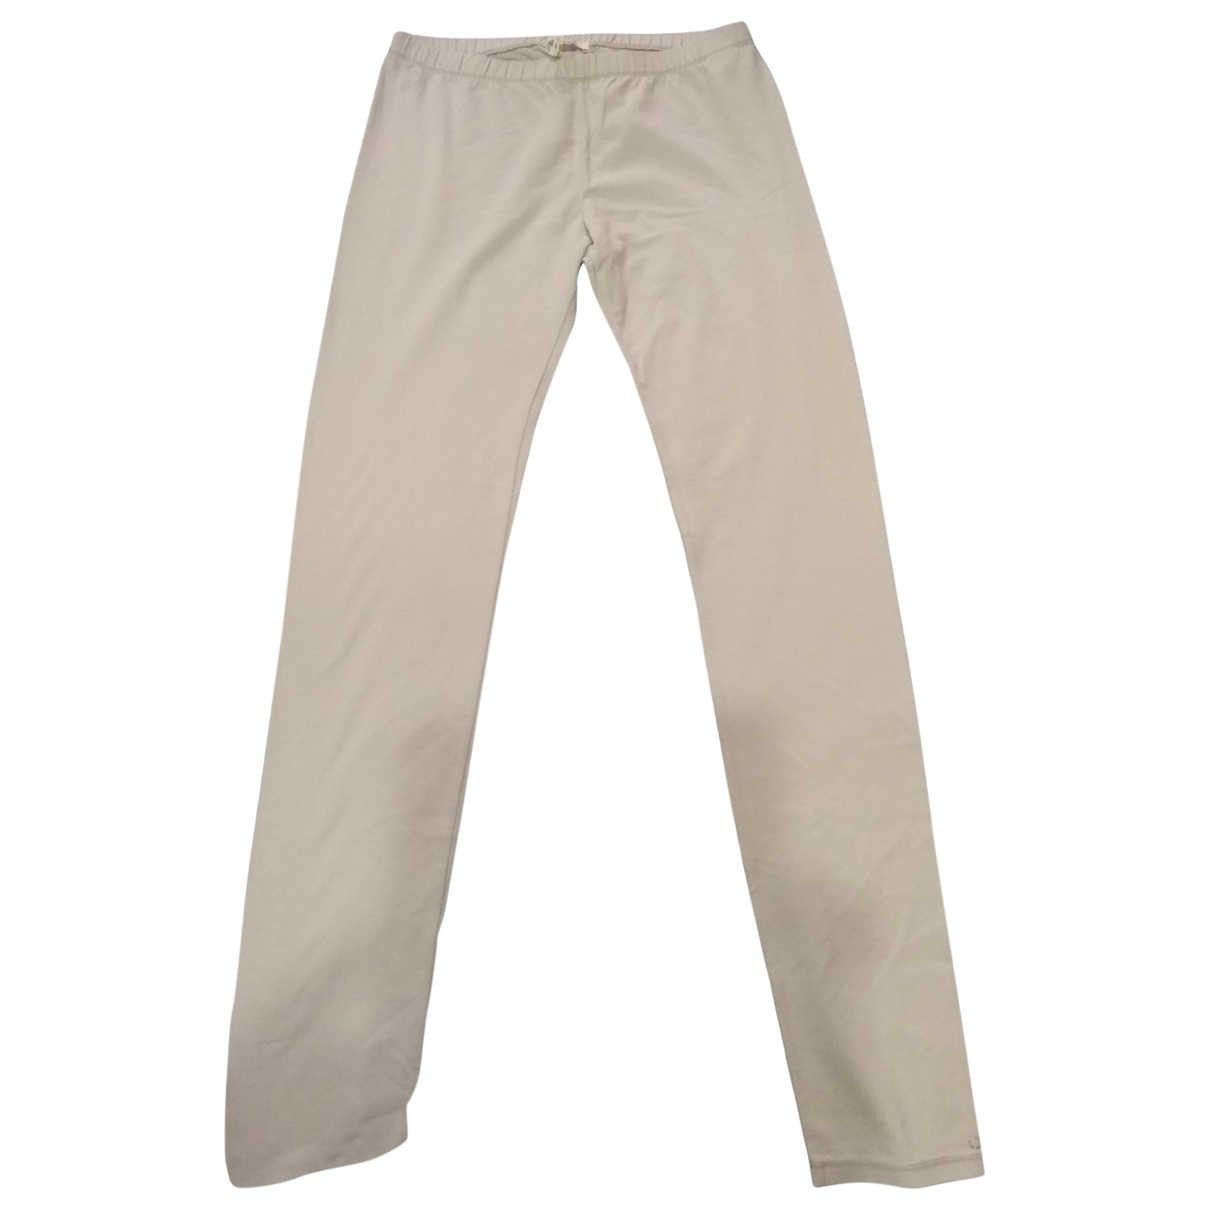 Chloé \N Grey Cotton Trousers for Kids 14 years - S